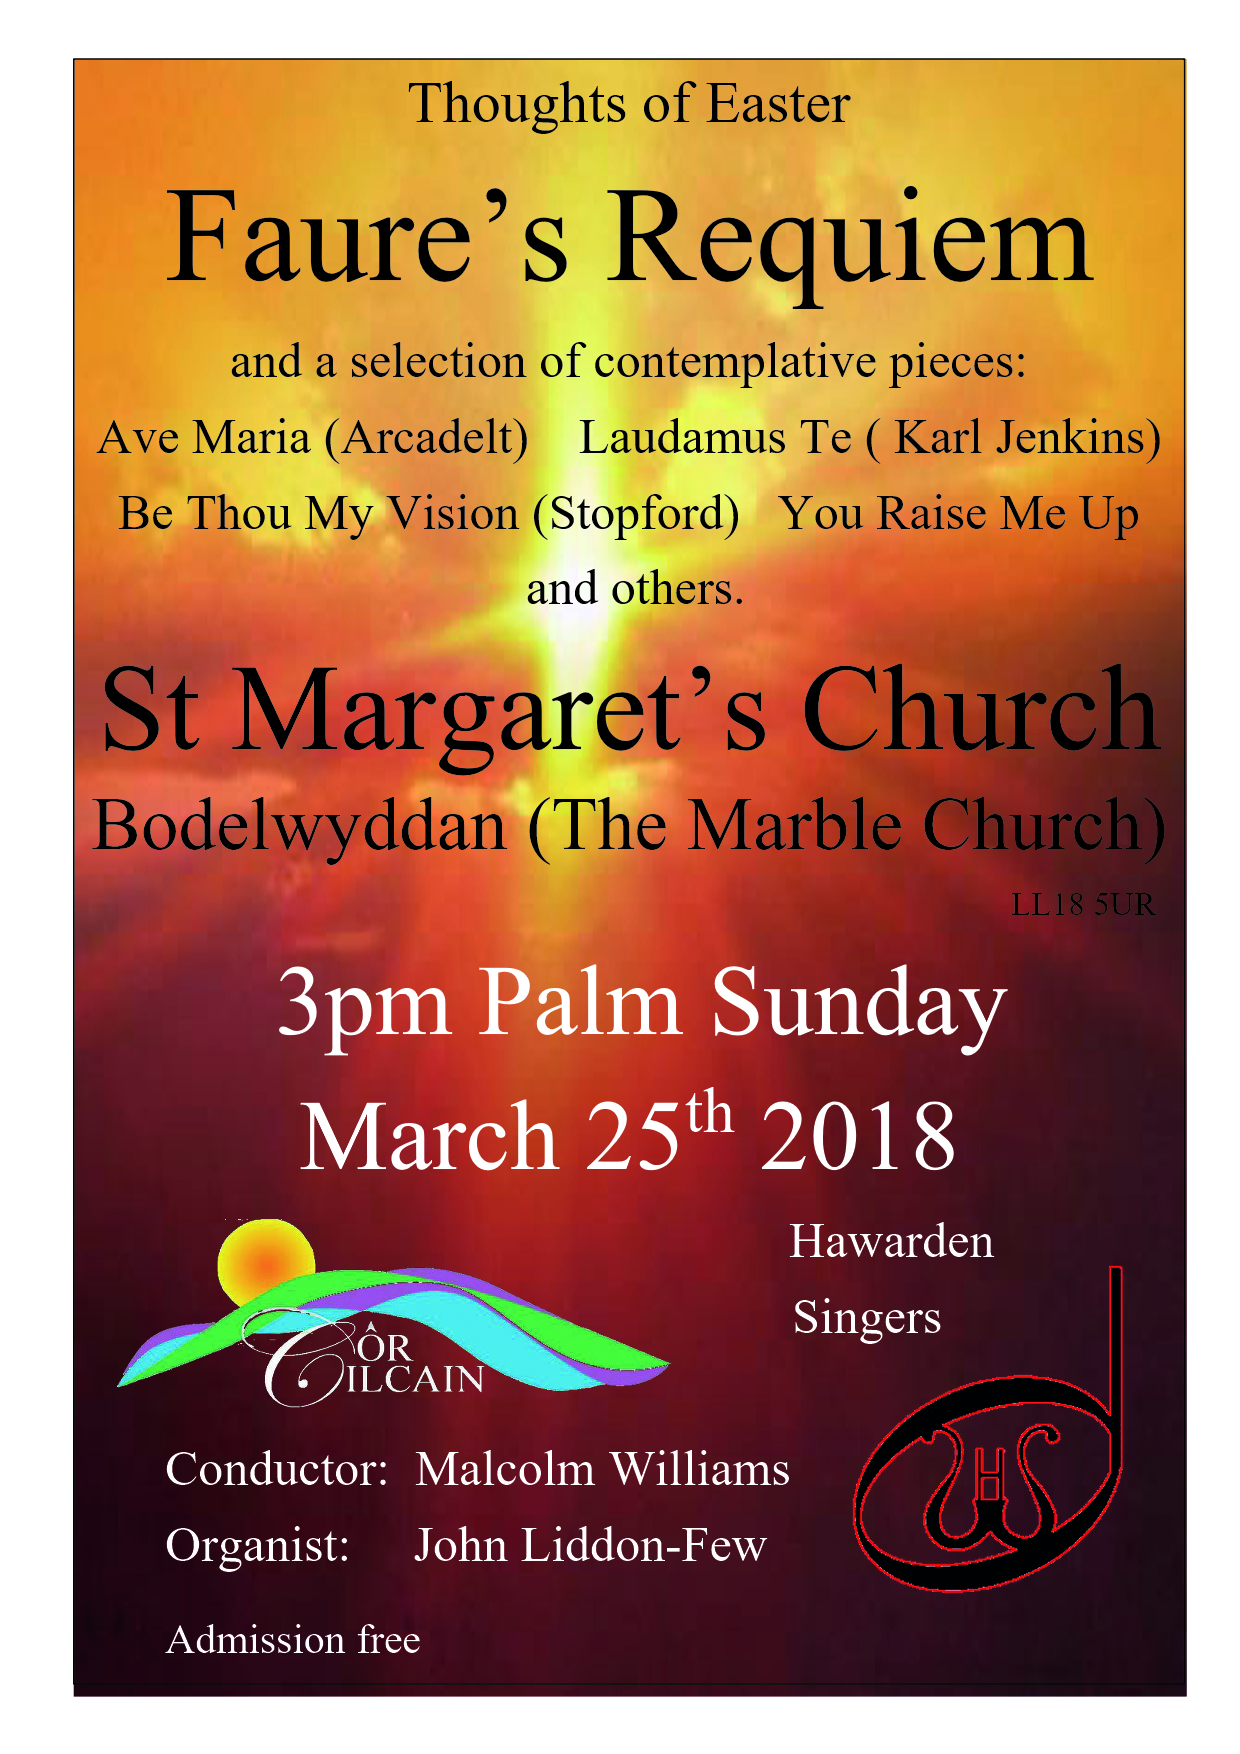 Concert at The Marble Church, Bodelwyddan – Cilcain Village